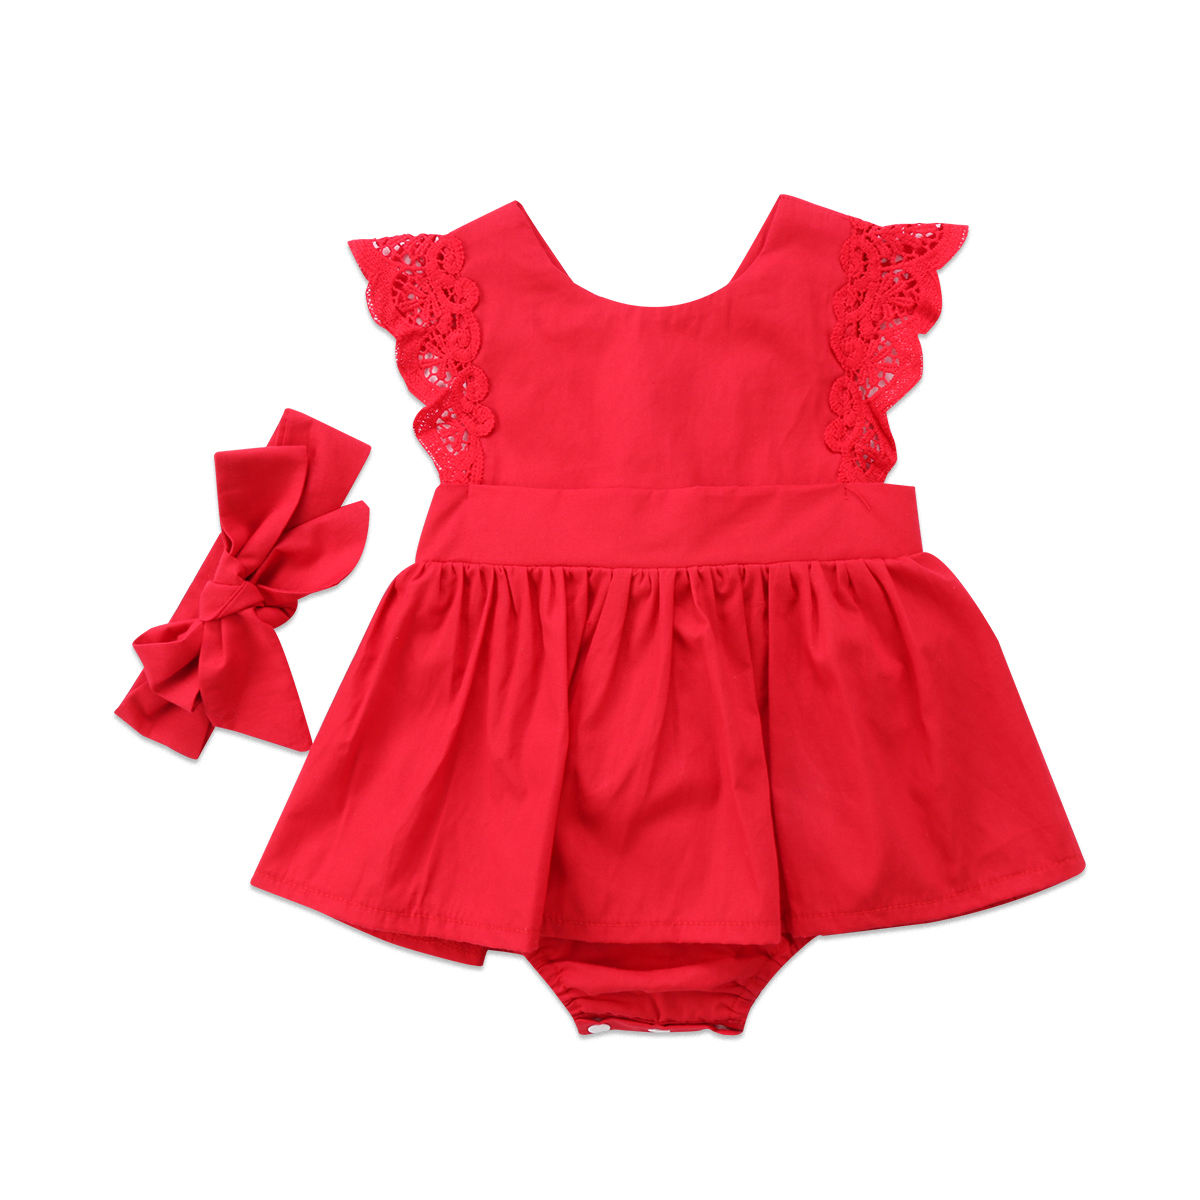 Sleeveless Cotton Cute Jumpsuit Headbands Outfits Clothes Baby Girl Romper 2pcs Red Flower Newborn Baby Girls Clothing 0-24M